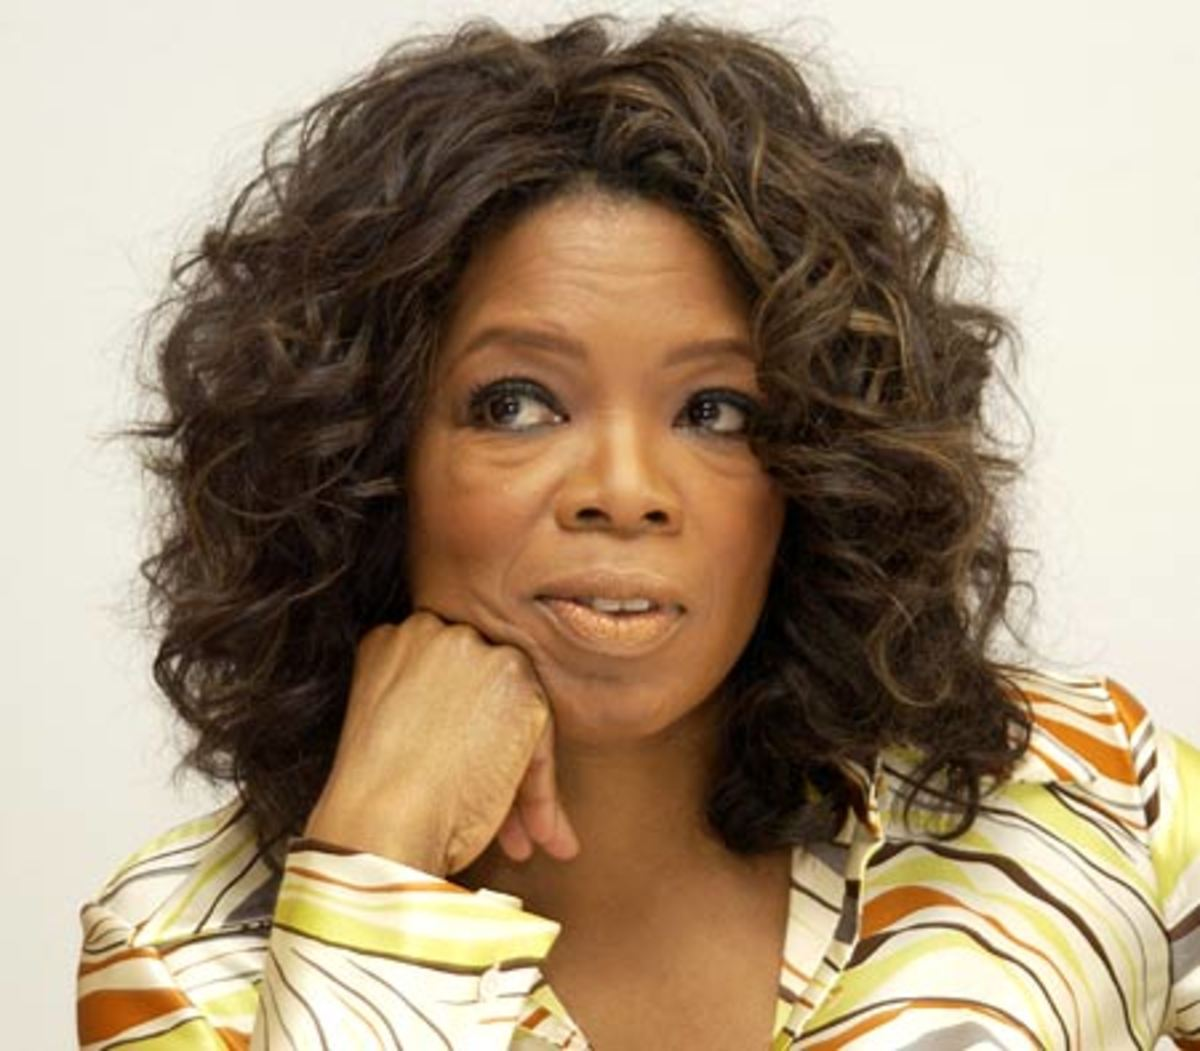 Oprah Winfrey was once told she was unfit to be on television.